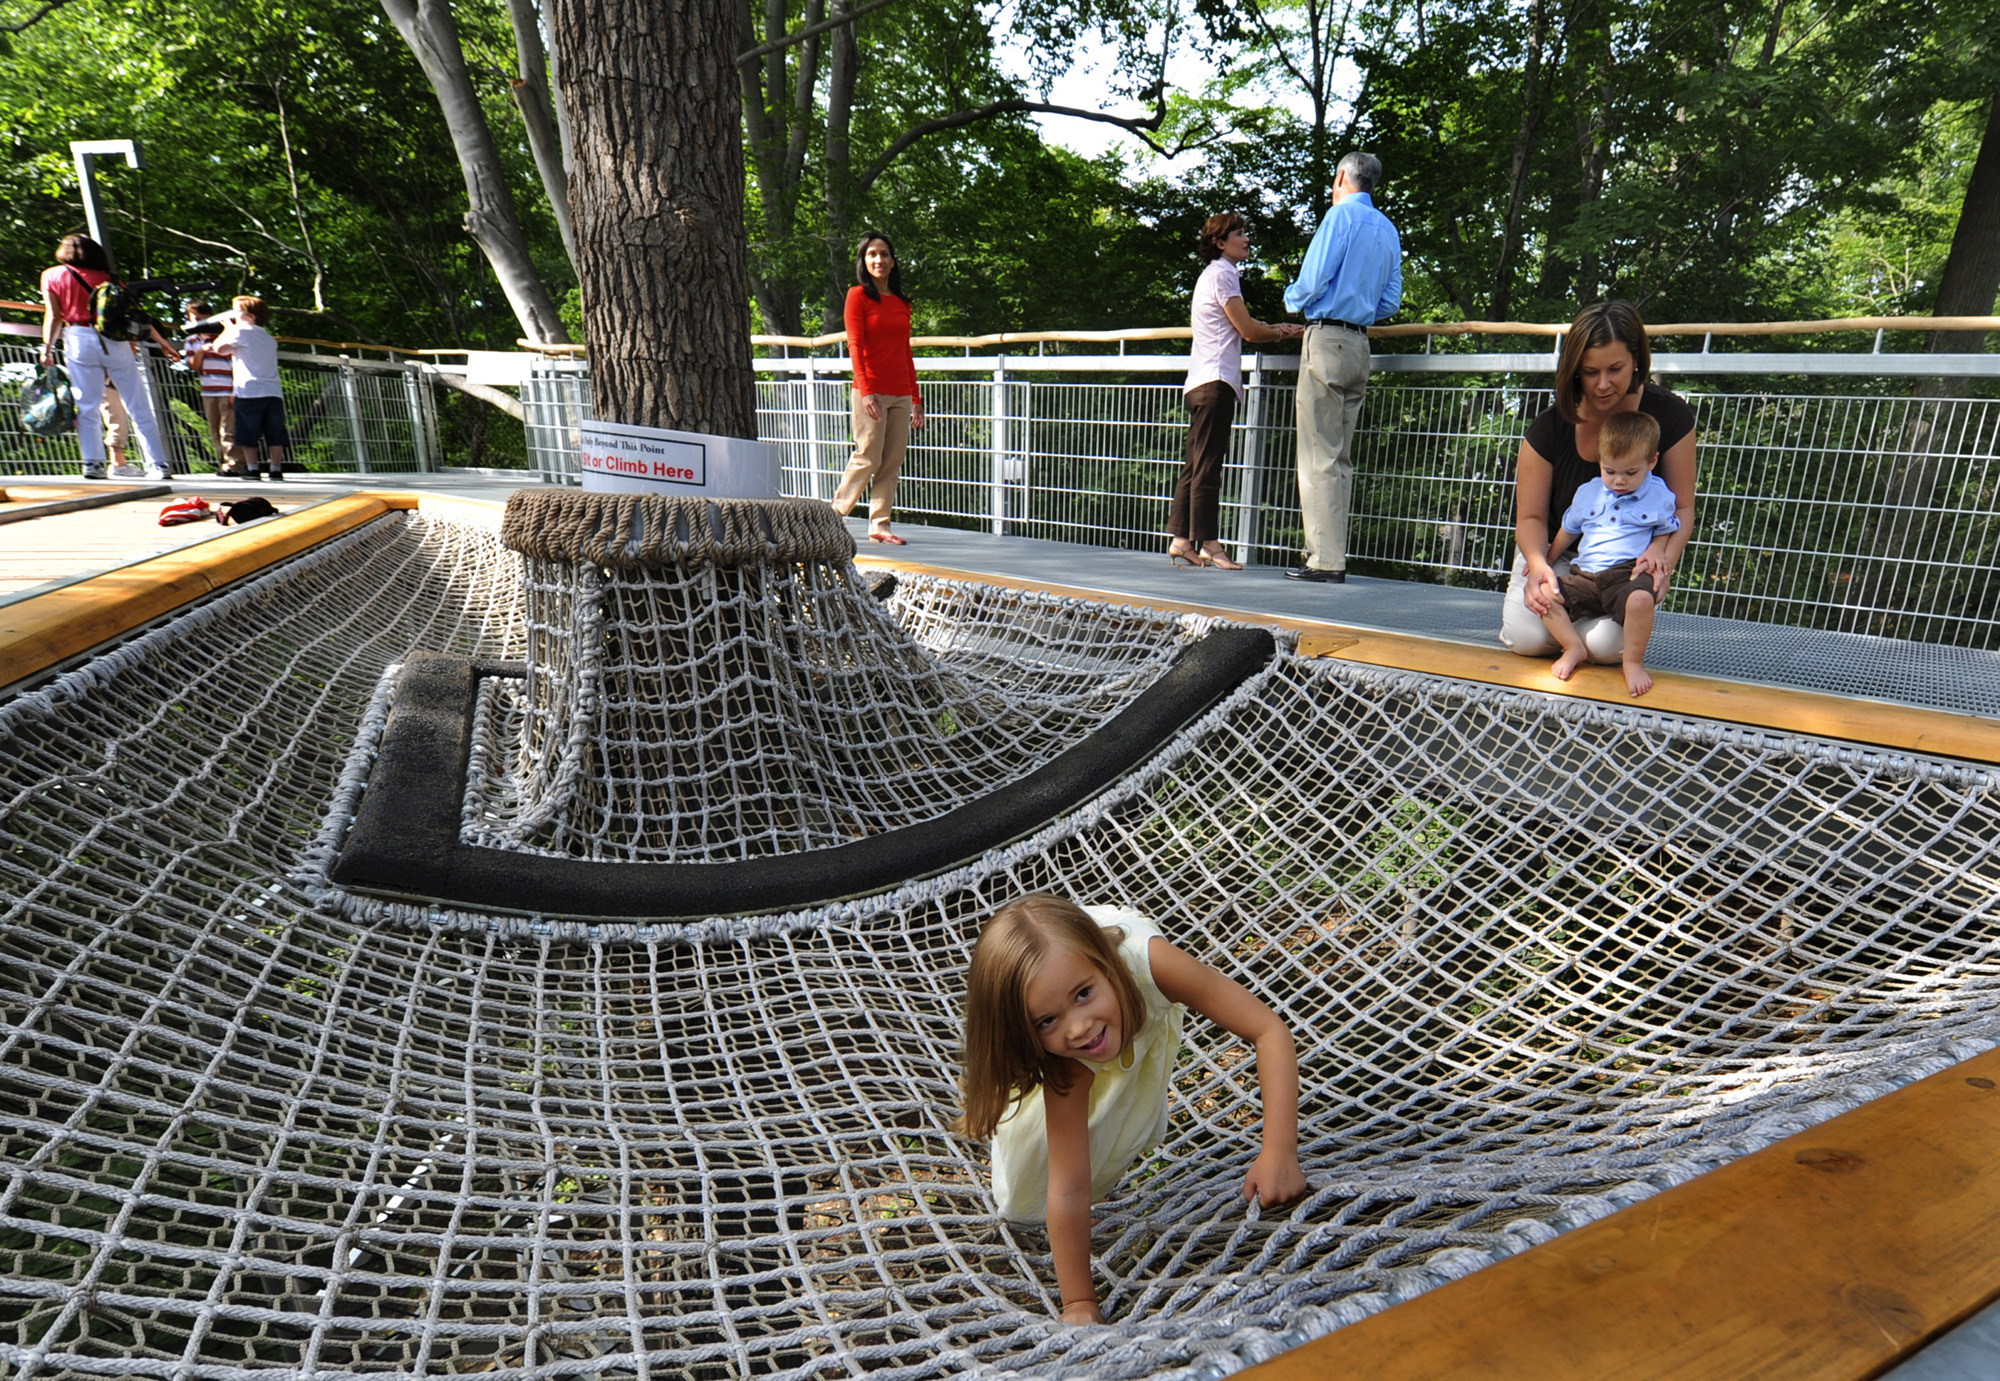 Children play in a playground in Philadelphia that has a net under a tree.